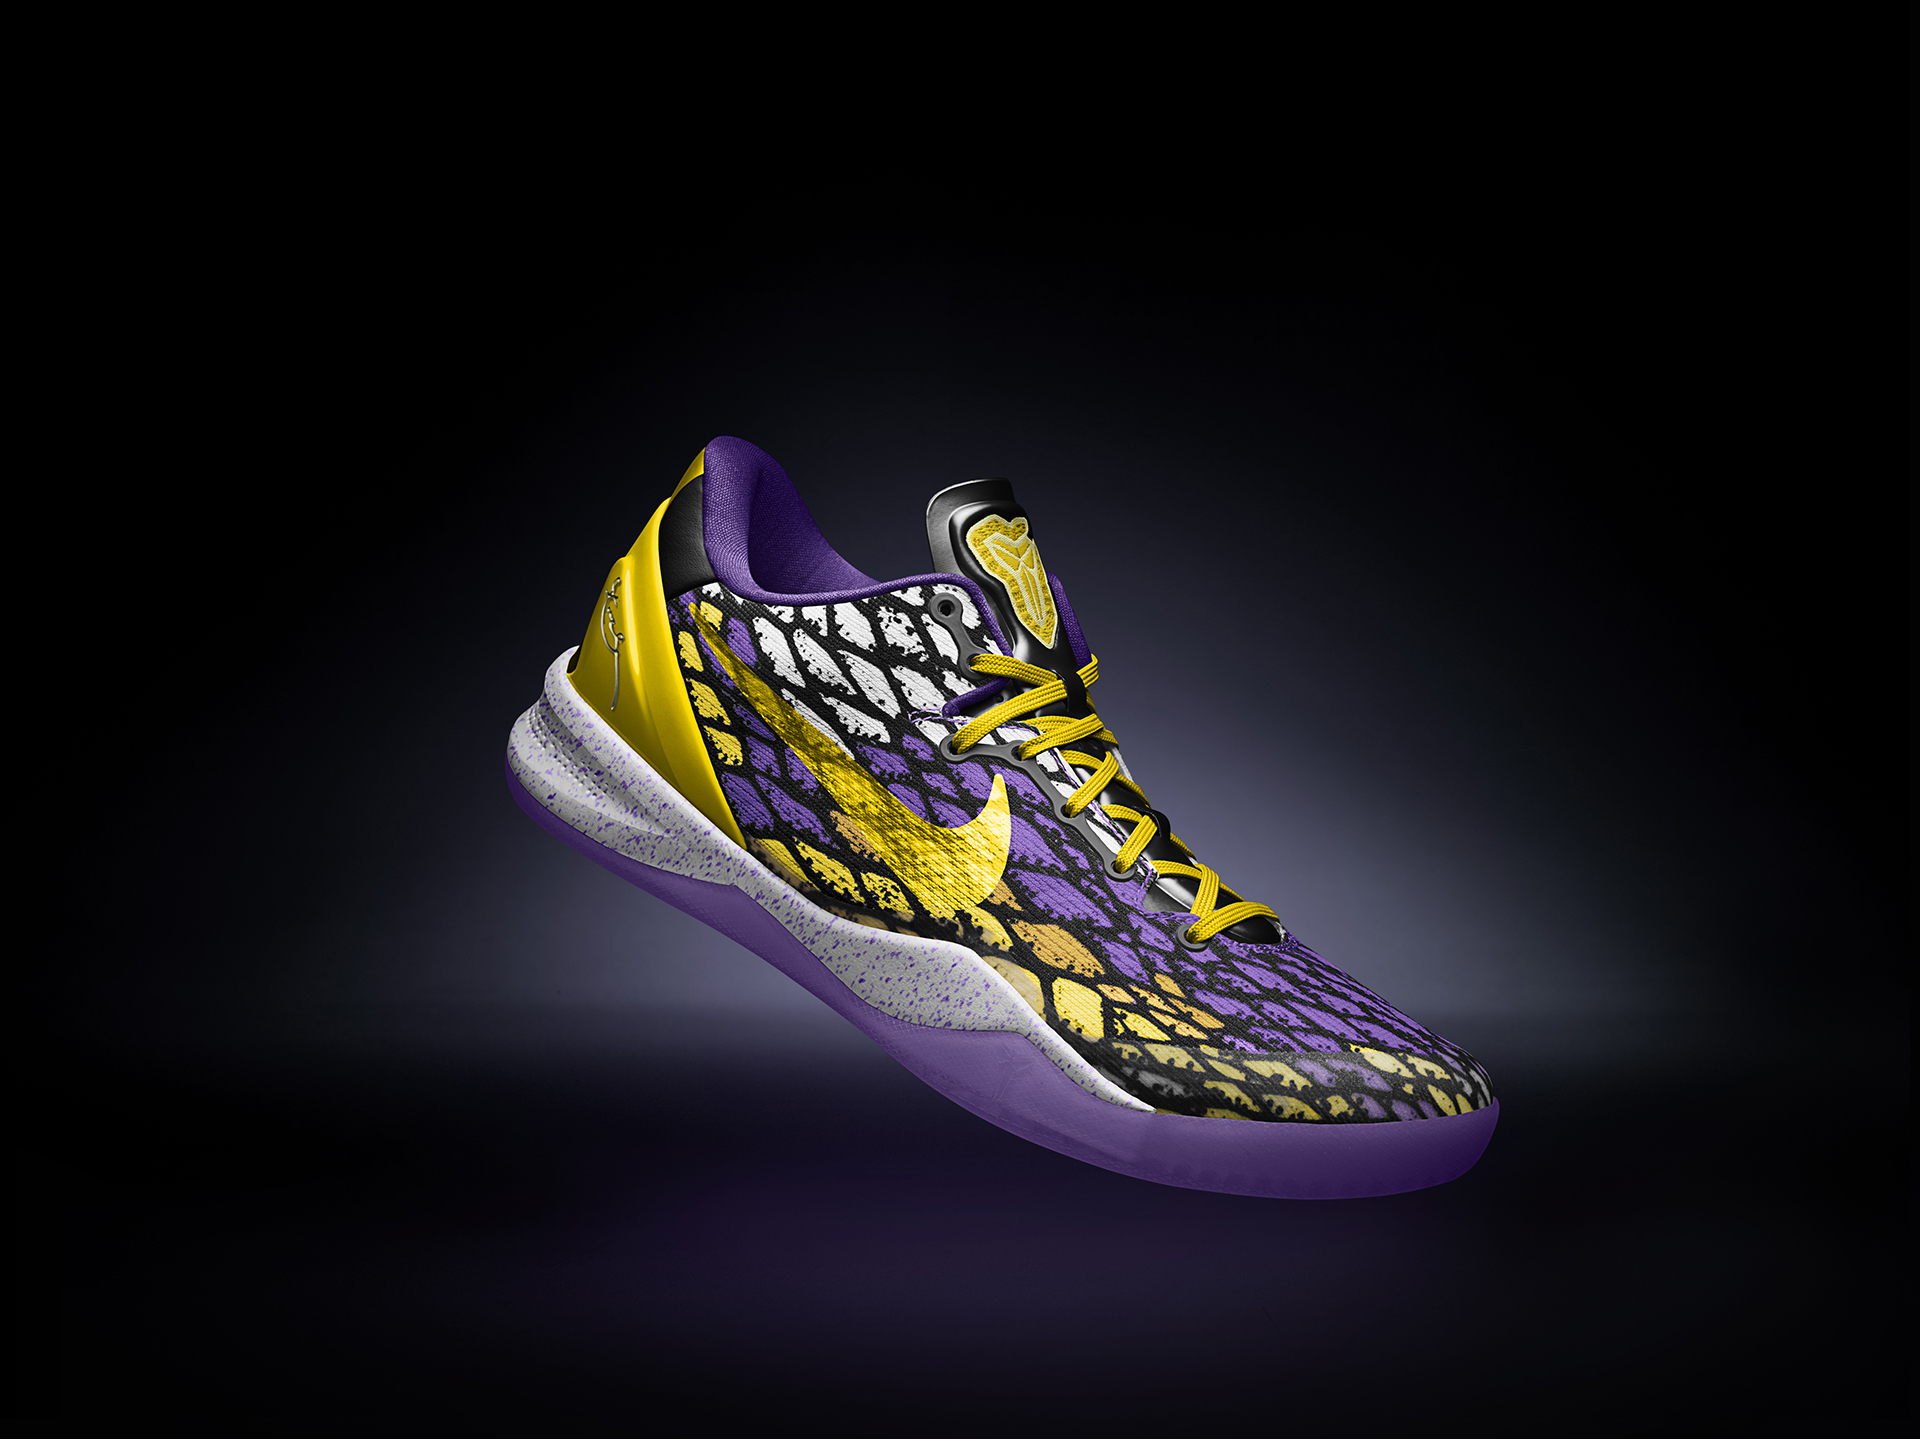 KOBEVIII_MEN_SINGLE_PURPLE_1920.jpg